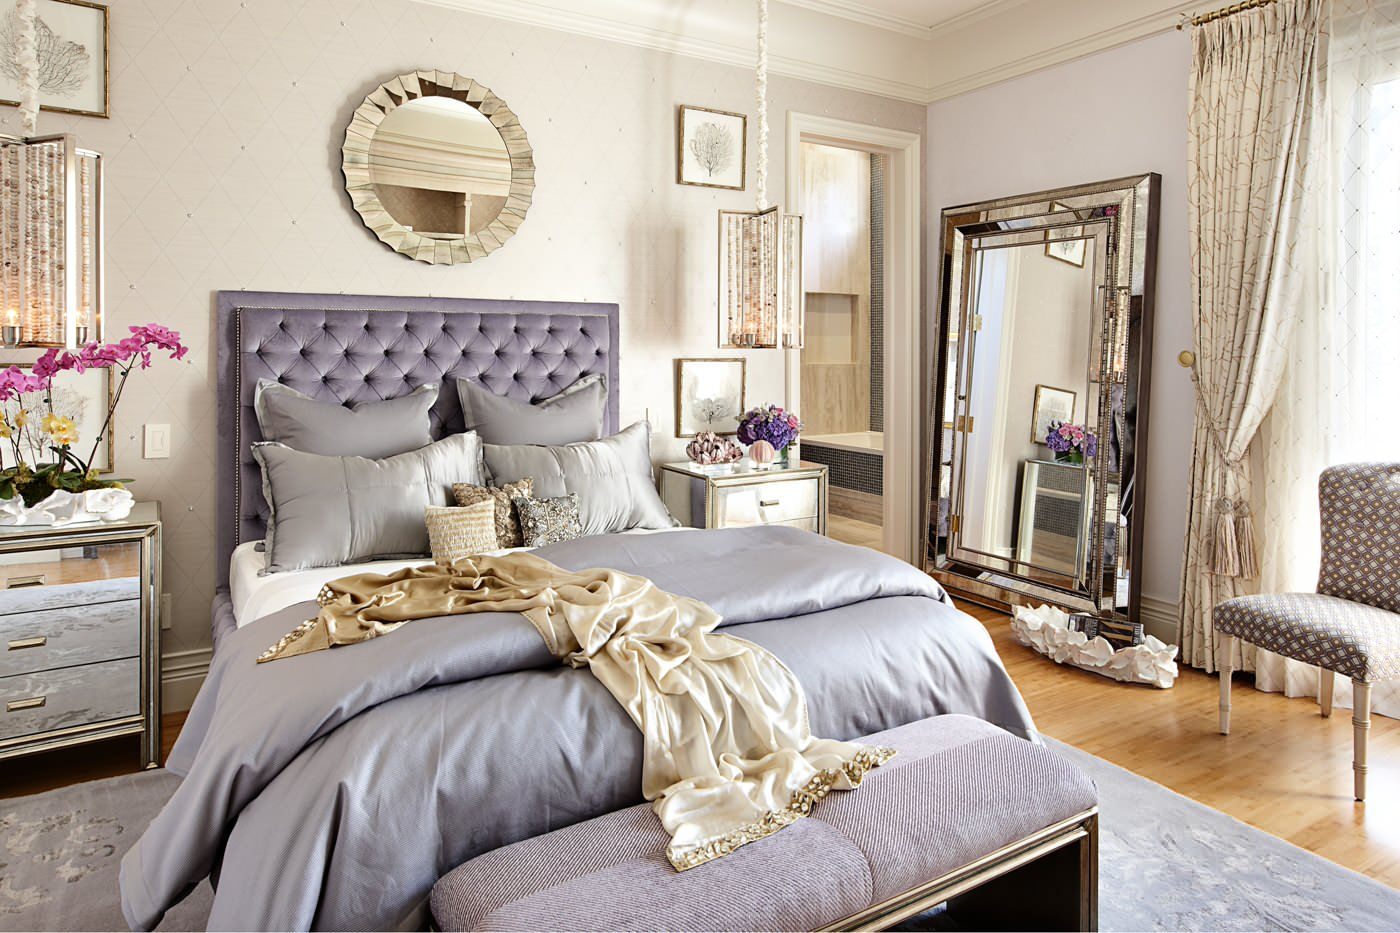 Las Vegas Bedroom Purple Princess Adult Idea Shop Room Ideas Mirror Nightstand Wall Mirror Silver Houzz